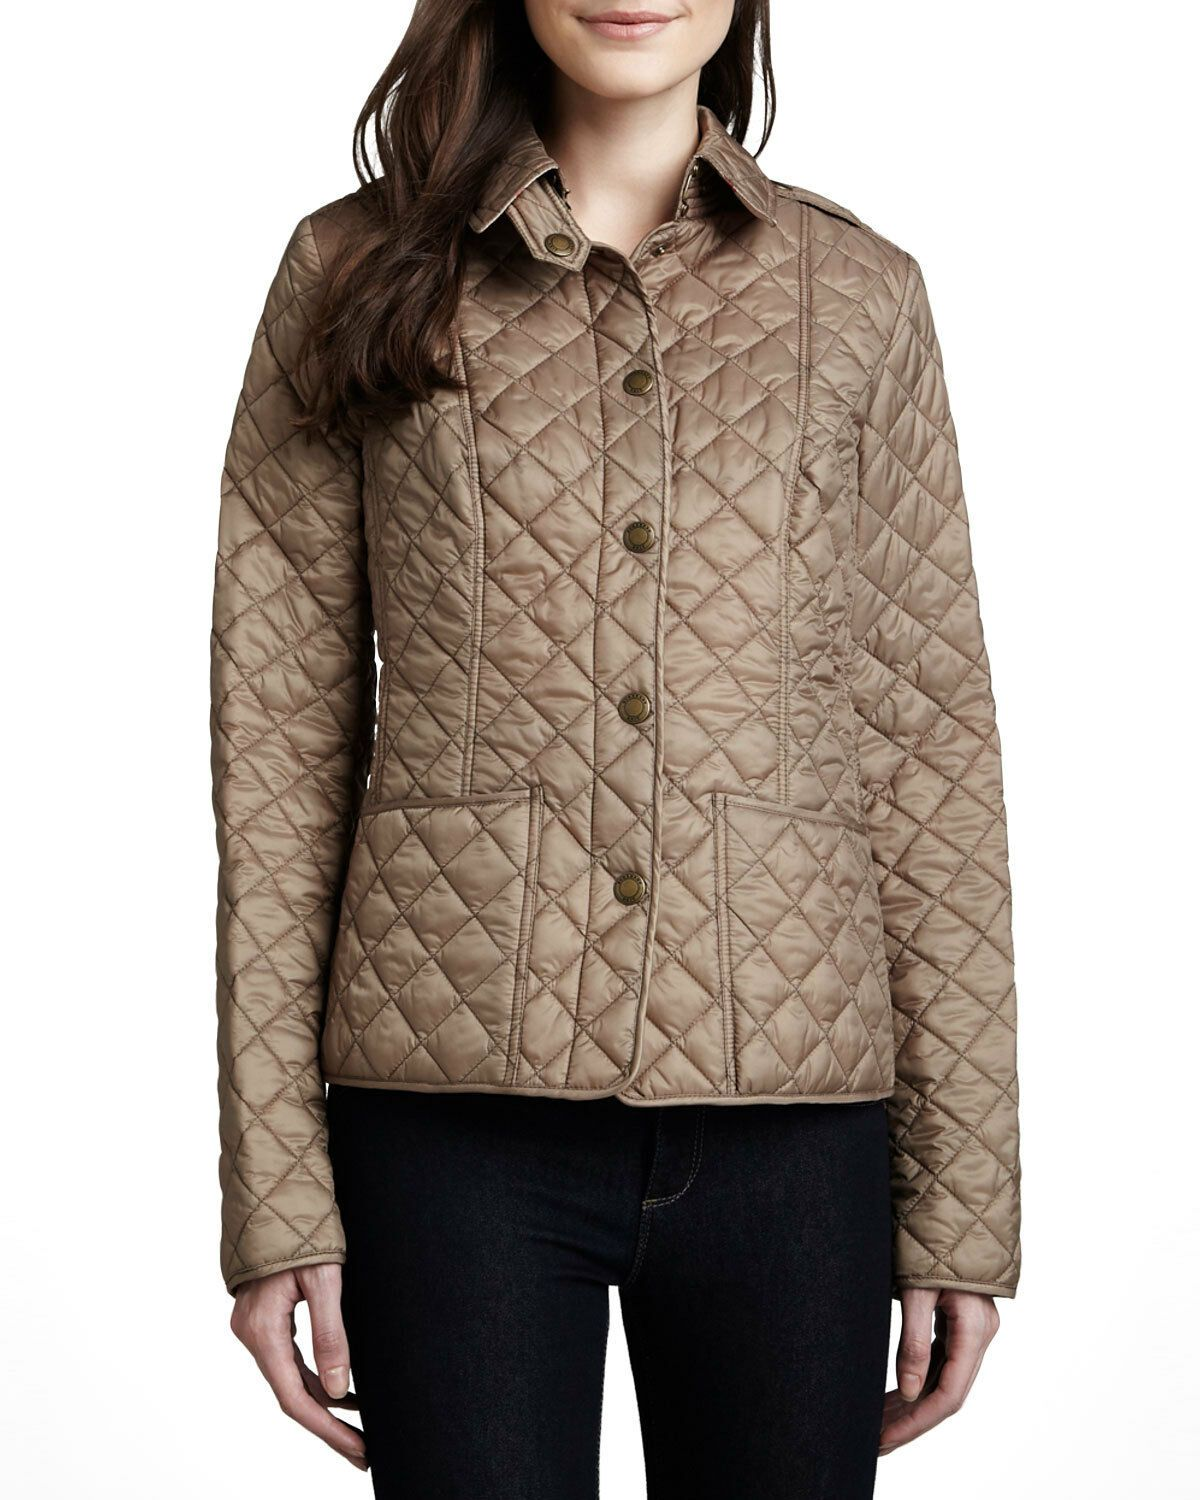 New Burberry Brit Kencott Pocket Quilted Jacket Coat Beige S Small Nwt